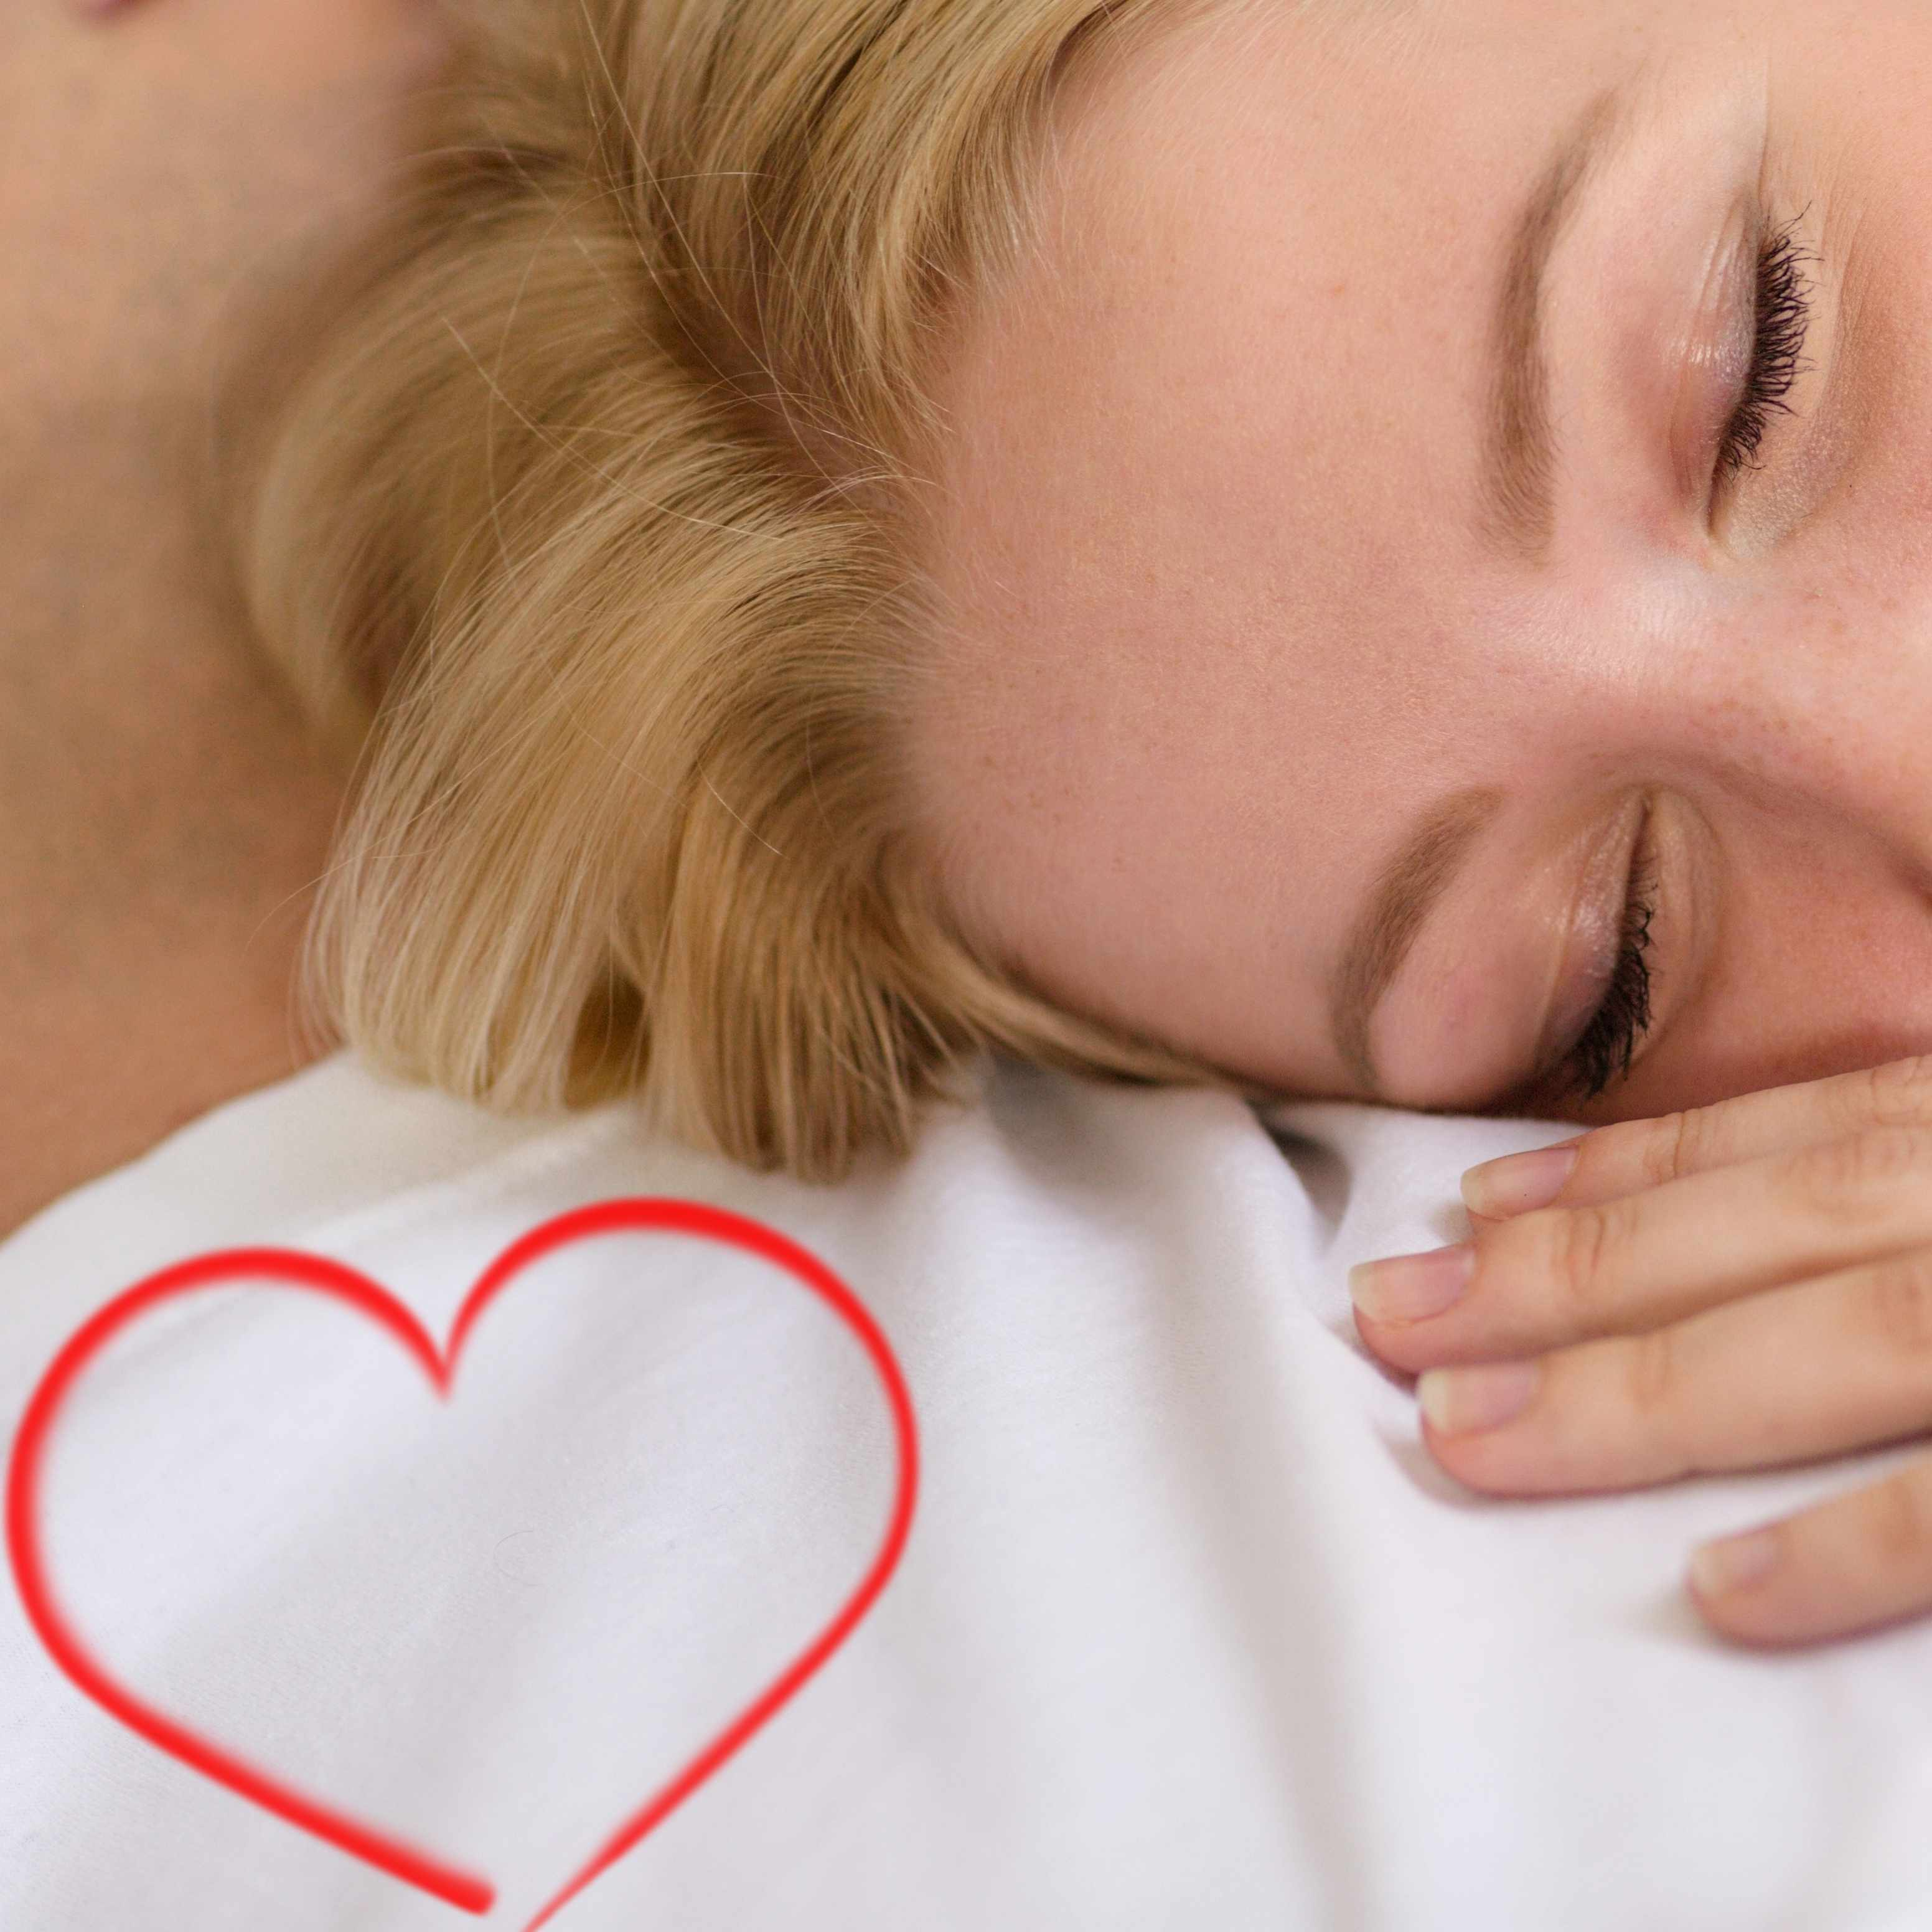 woman sleeping peacefully, loving sleep with a heart drawn in the corner